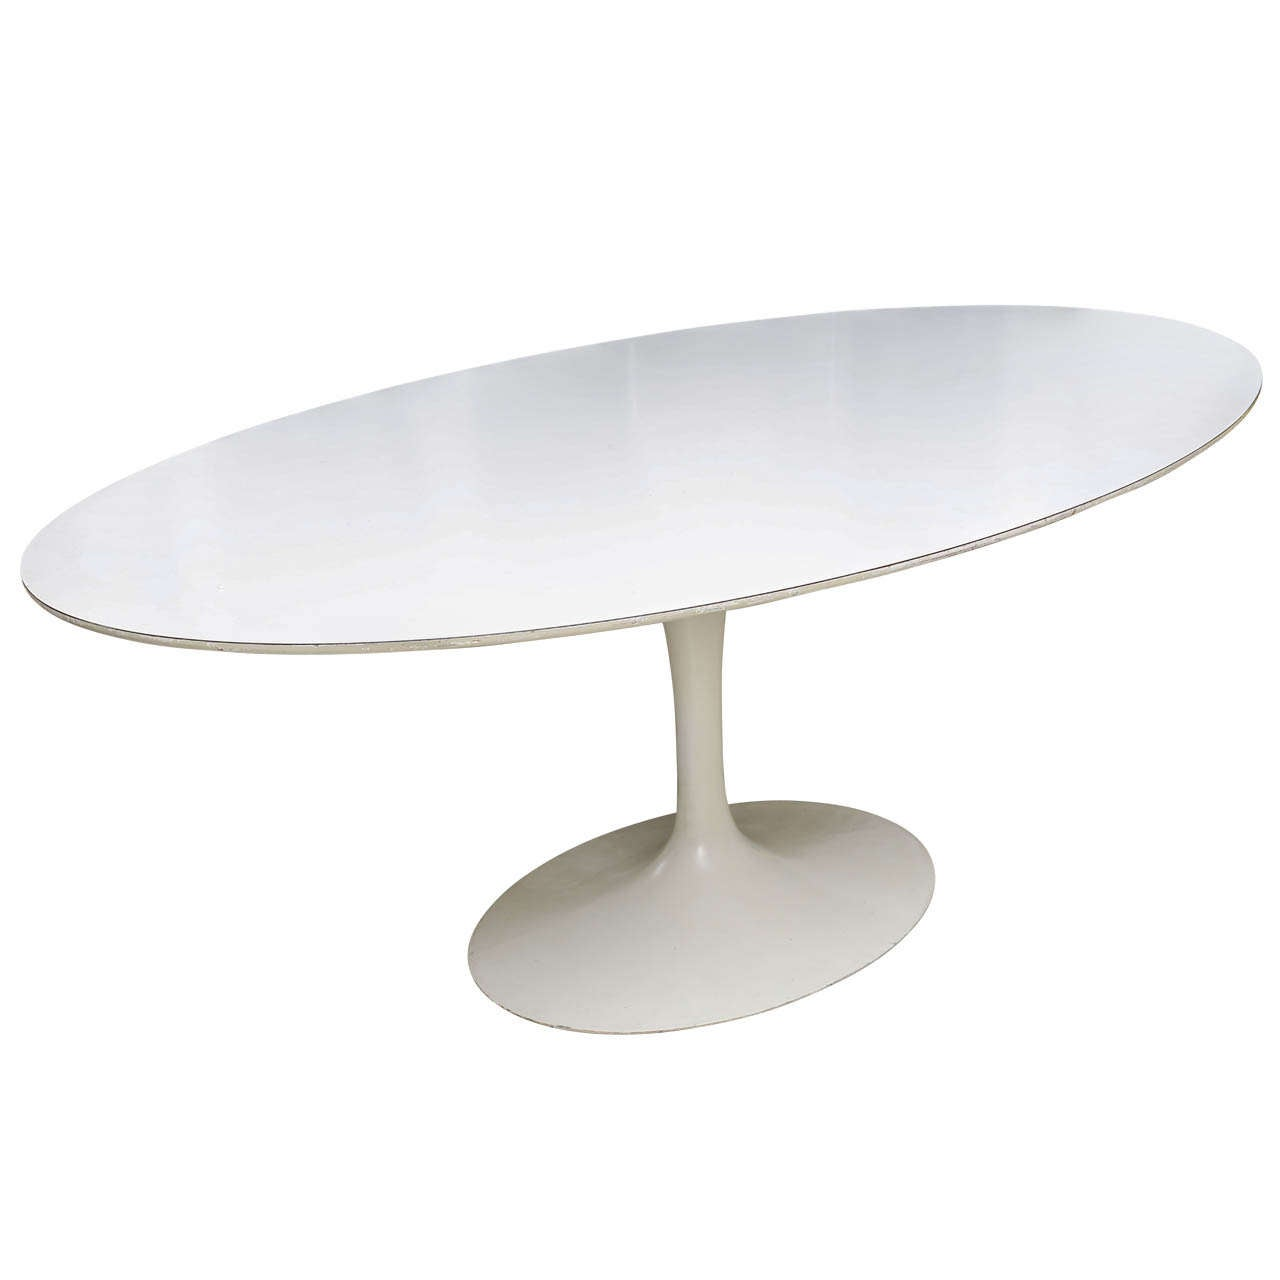 Vintage Saarinen Tulip Dining Table At 1stdibs